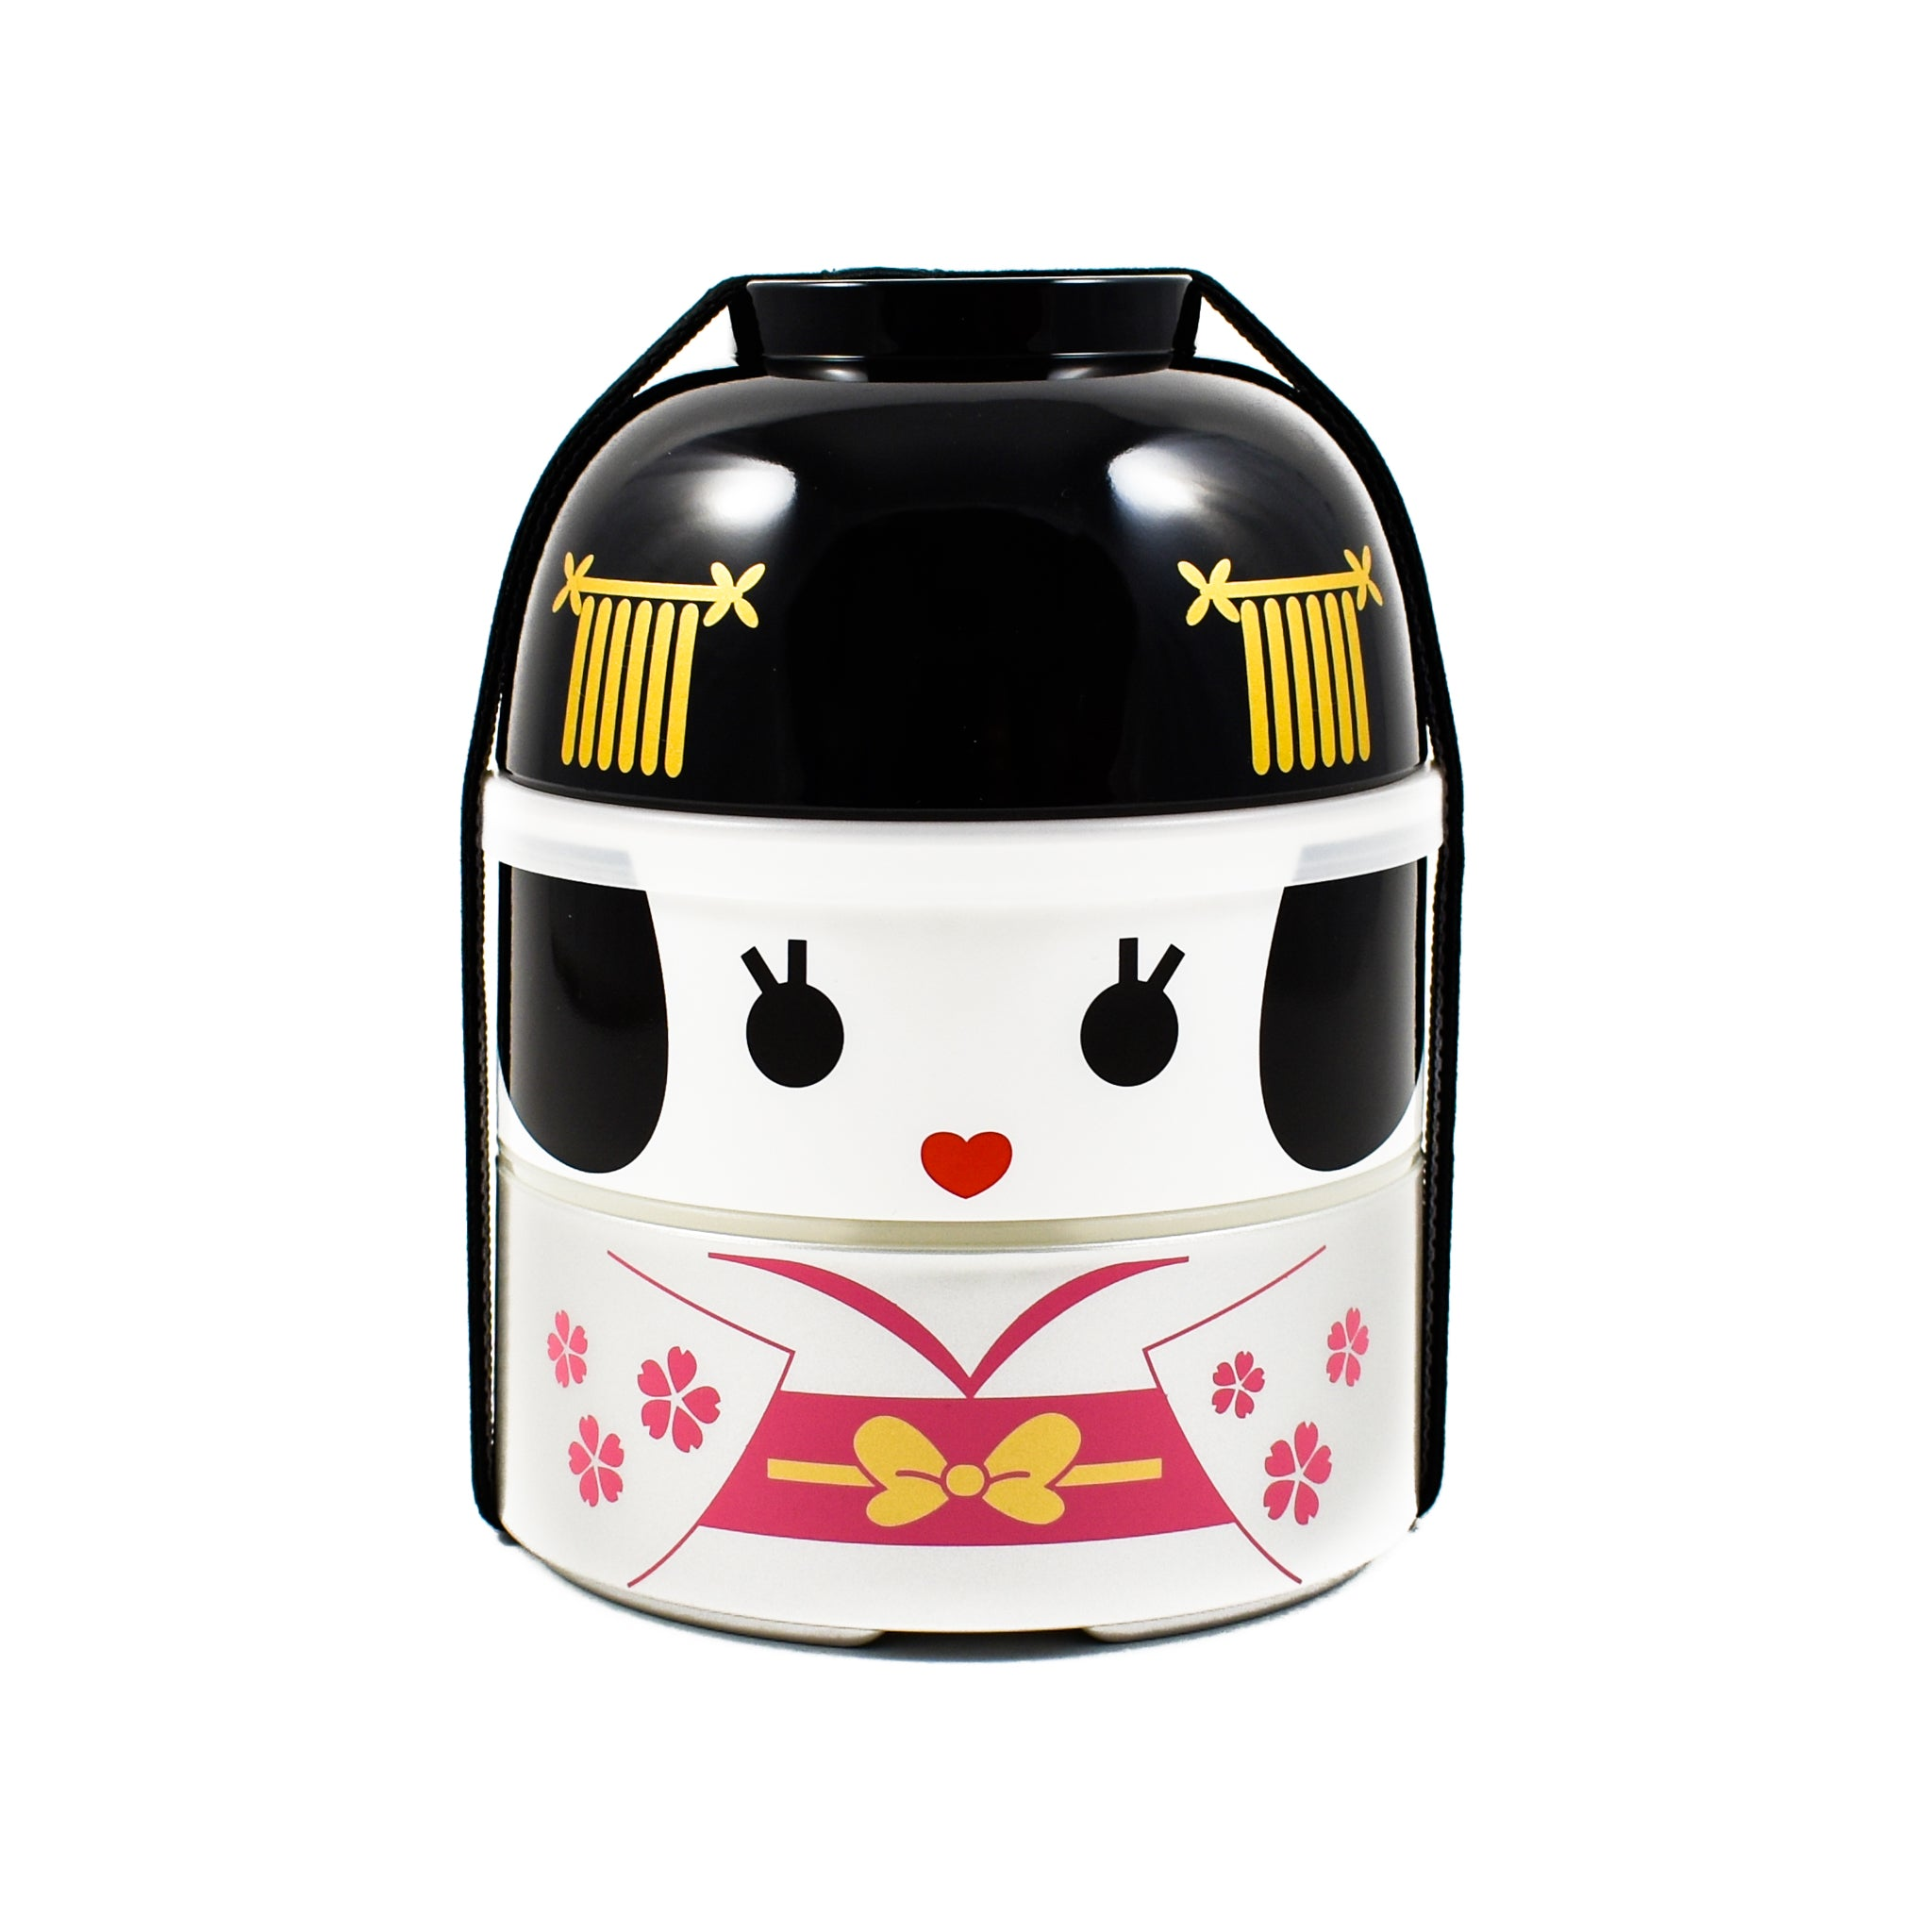 Hakoya Pink Geisha Bento Box - Large Cookware Japanese Food